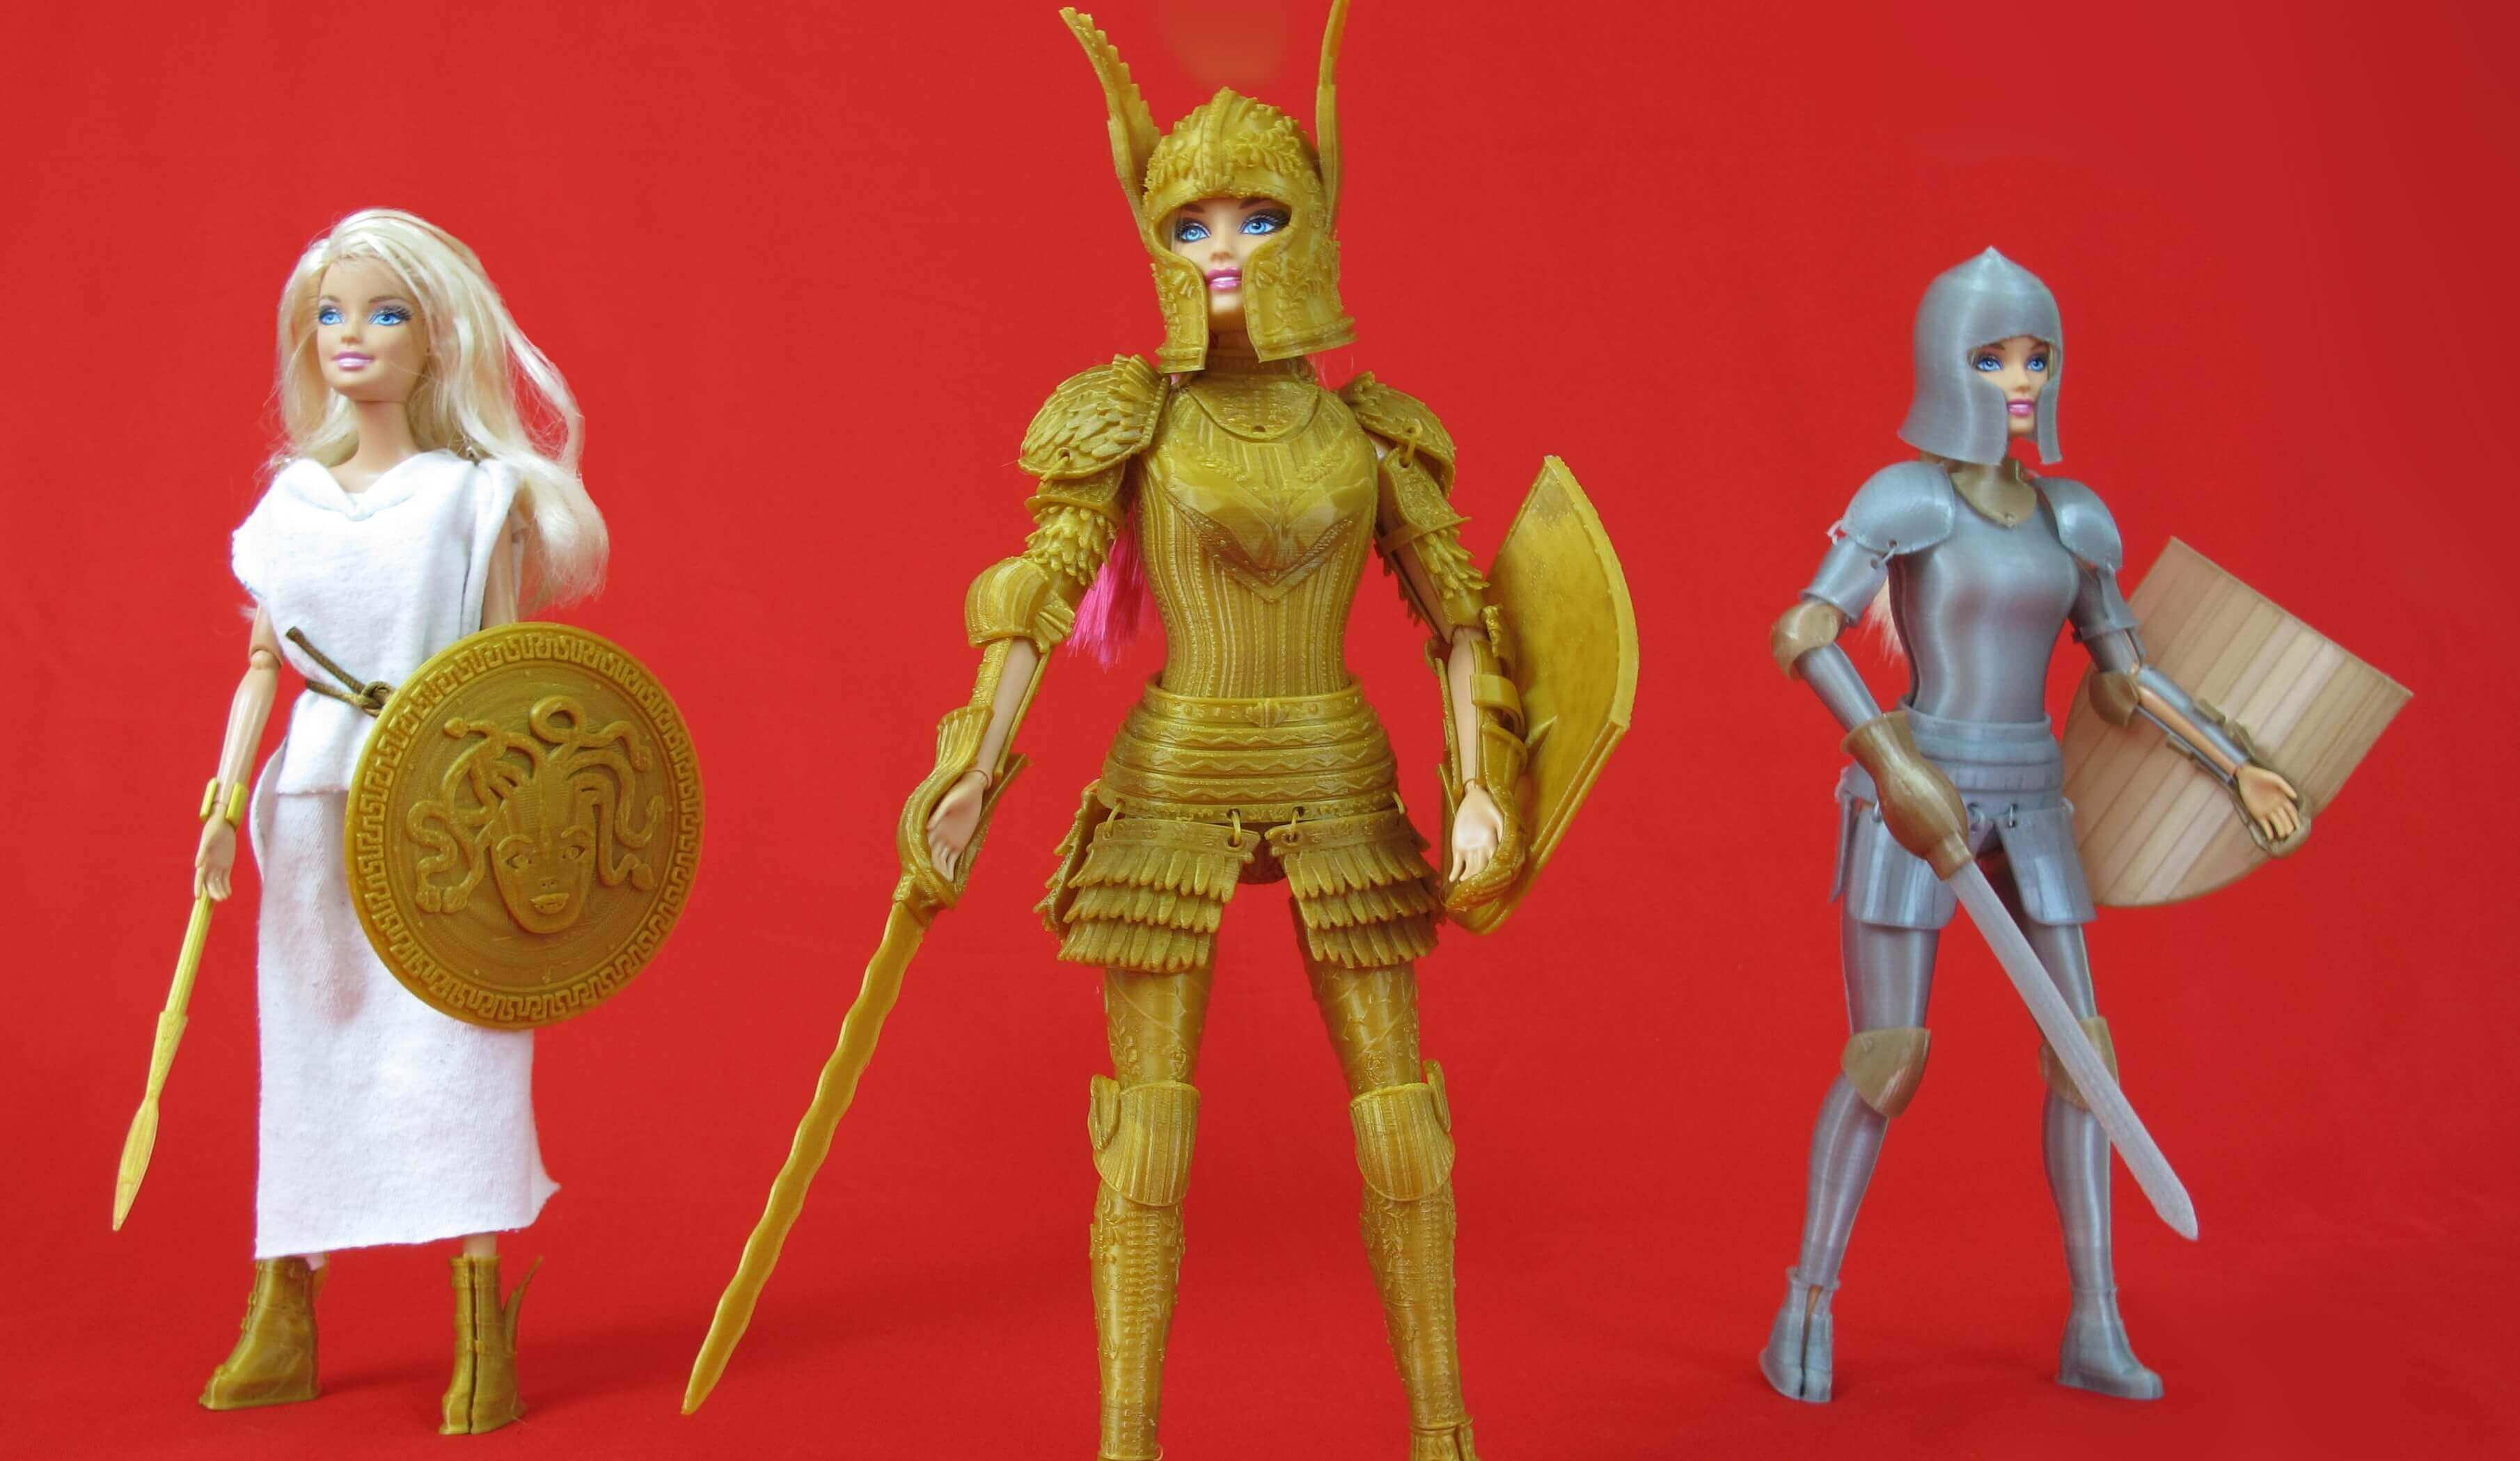 Dollies Get Makeovers With 3D Printed Barbie Armor | All3DP